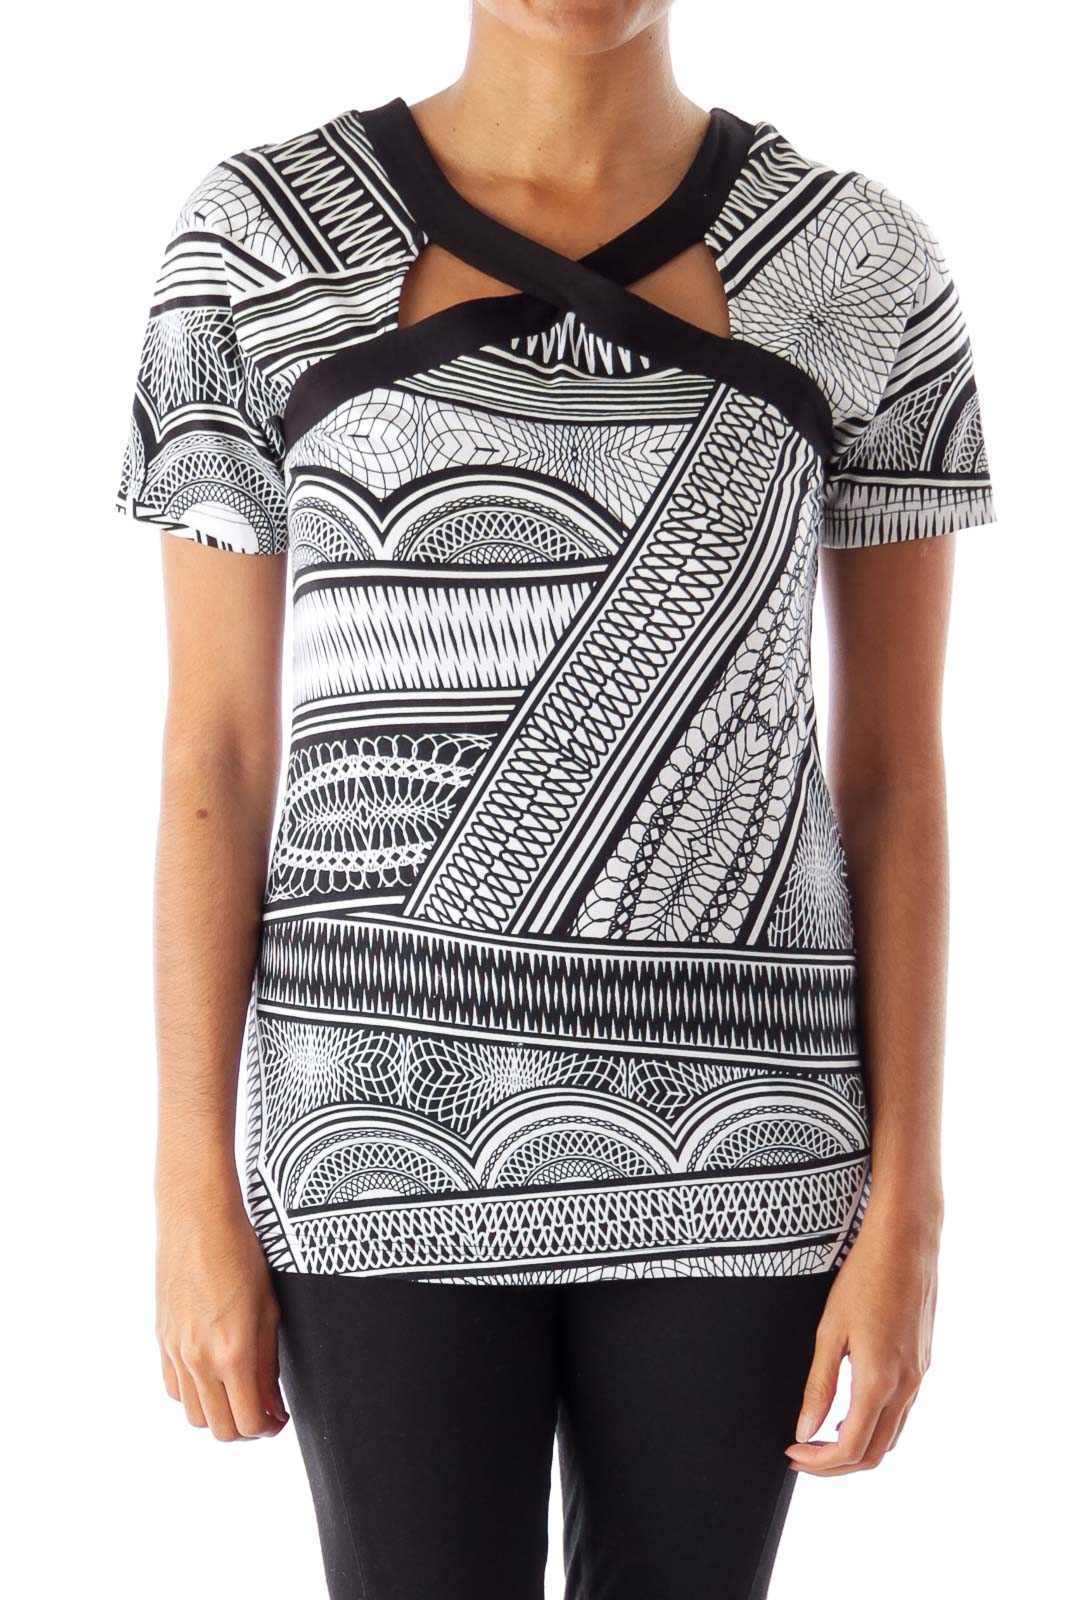 Black & White Cutout Printed Top Front